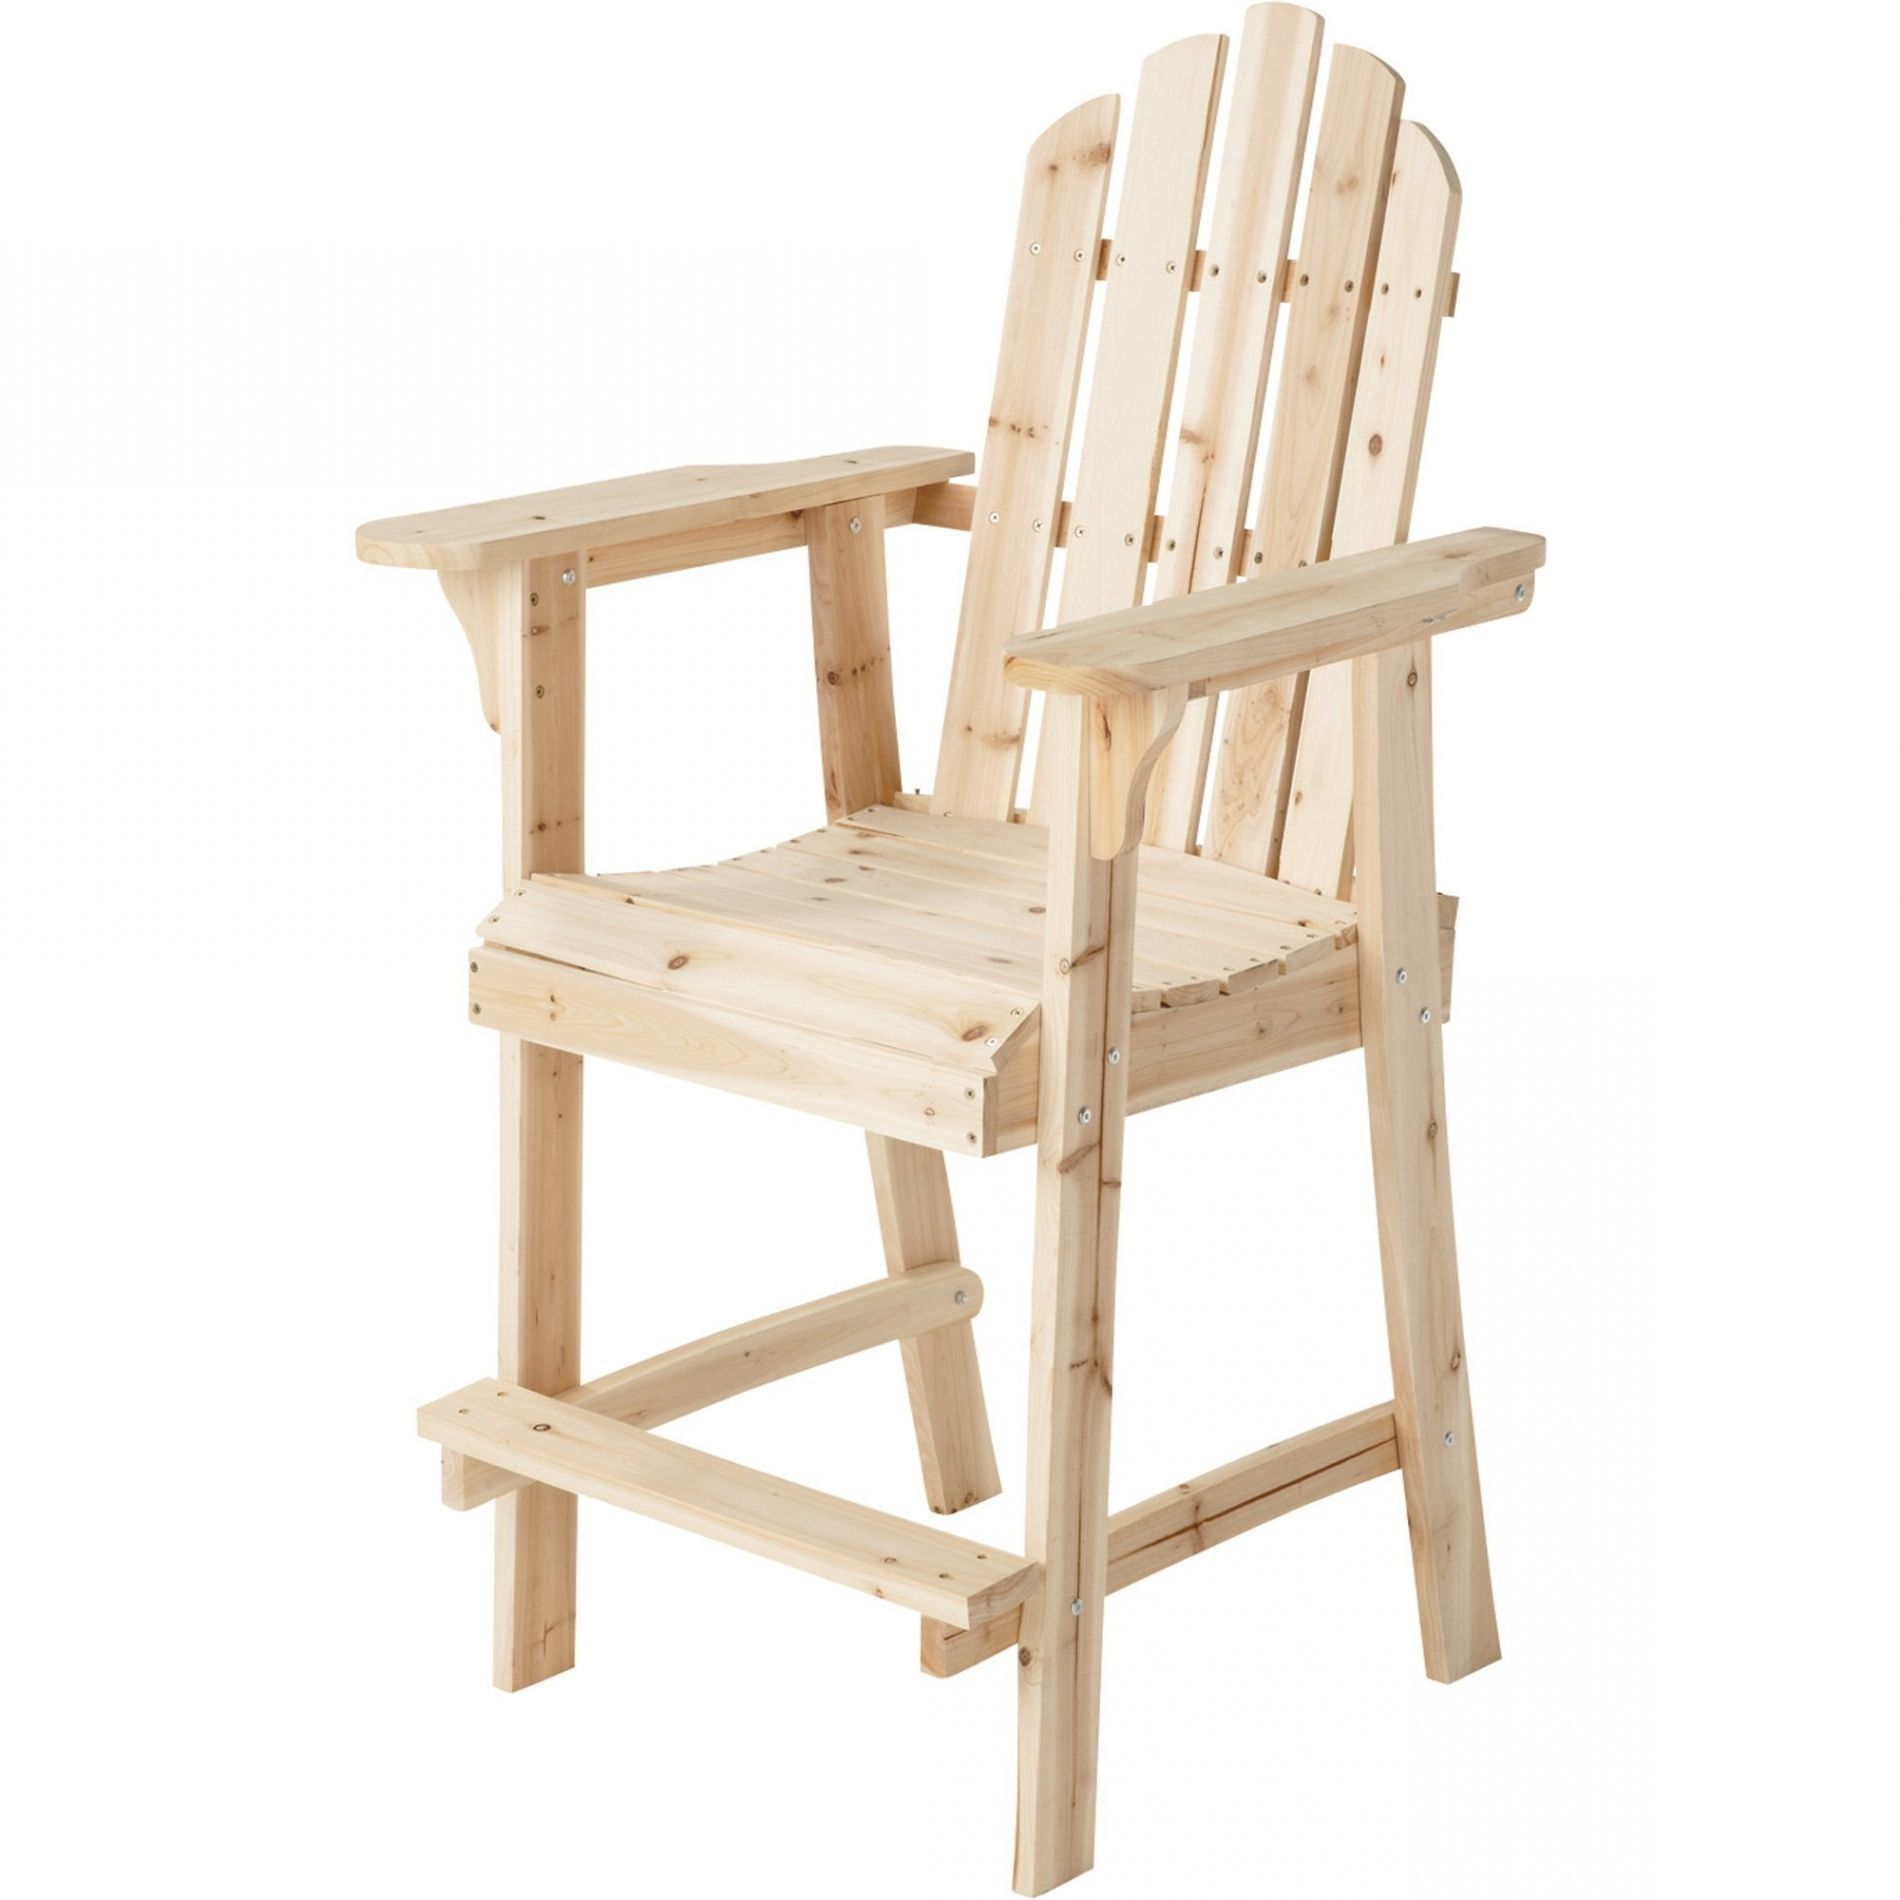 Farm Garden Super Inspirational Bar Height Adirondack Chair Plans